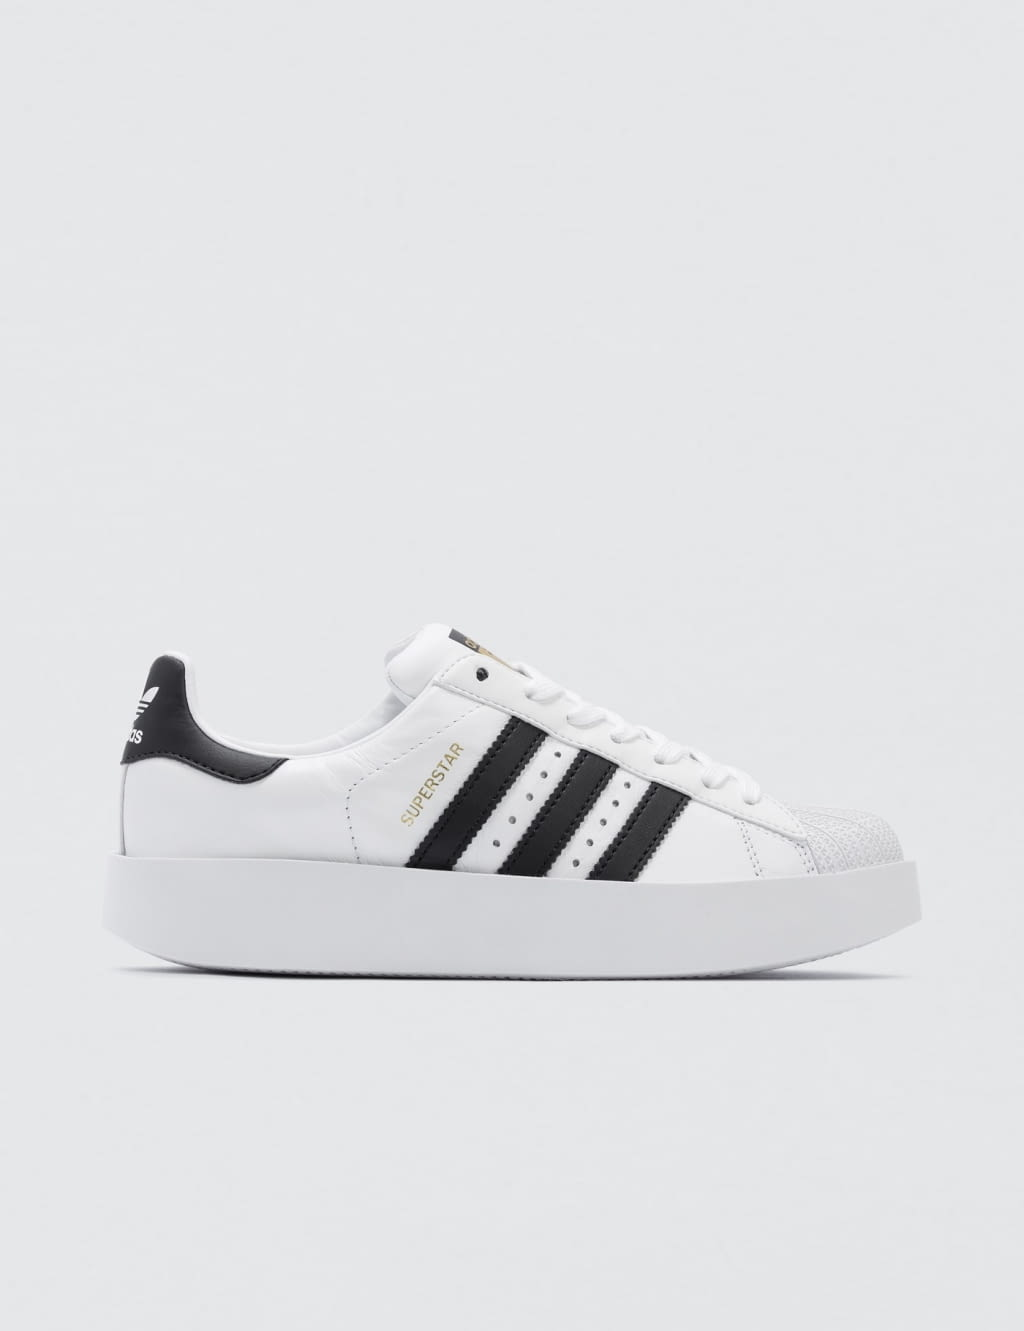 Adidas Originals Superstar Bold W · Adidas Originals Superstar Bold W ...